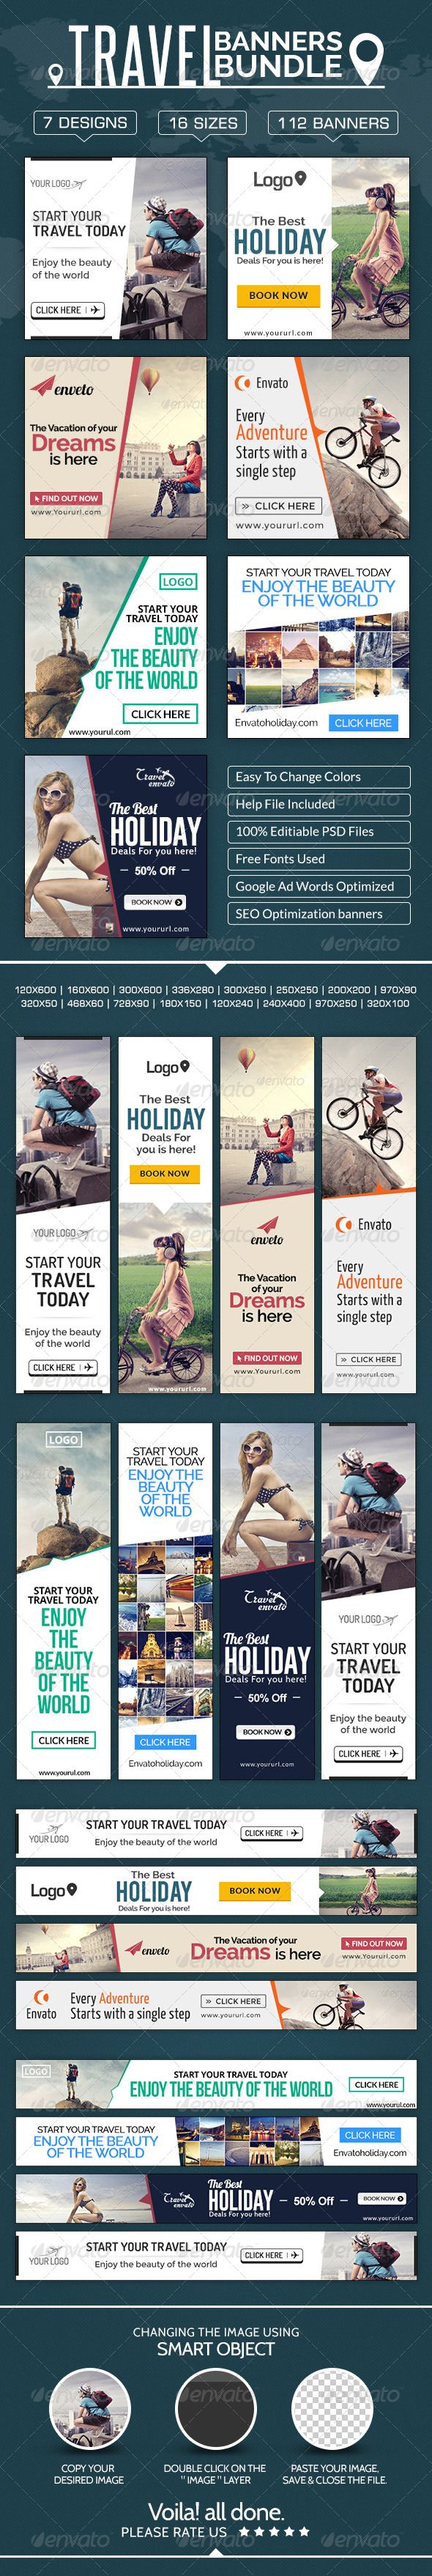 Travel Banners Mega Bundle - 7 sets Template PSD | Buy and Download: http://graphicriver.net/item/travel-banners-mega-bundle-7-sets/8603590?WT.ac=category_thumb&WT.z_author=doto&ref=ksioks